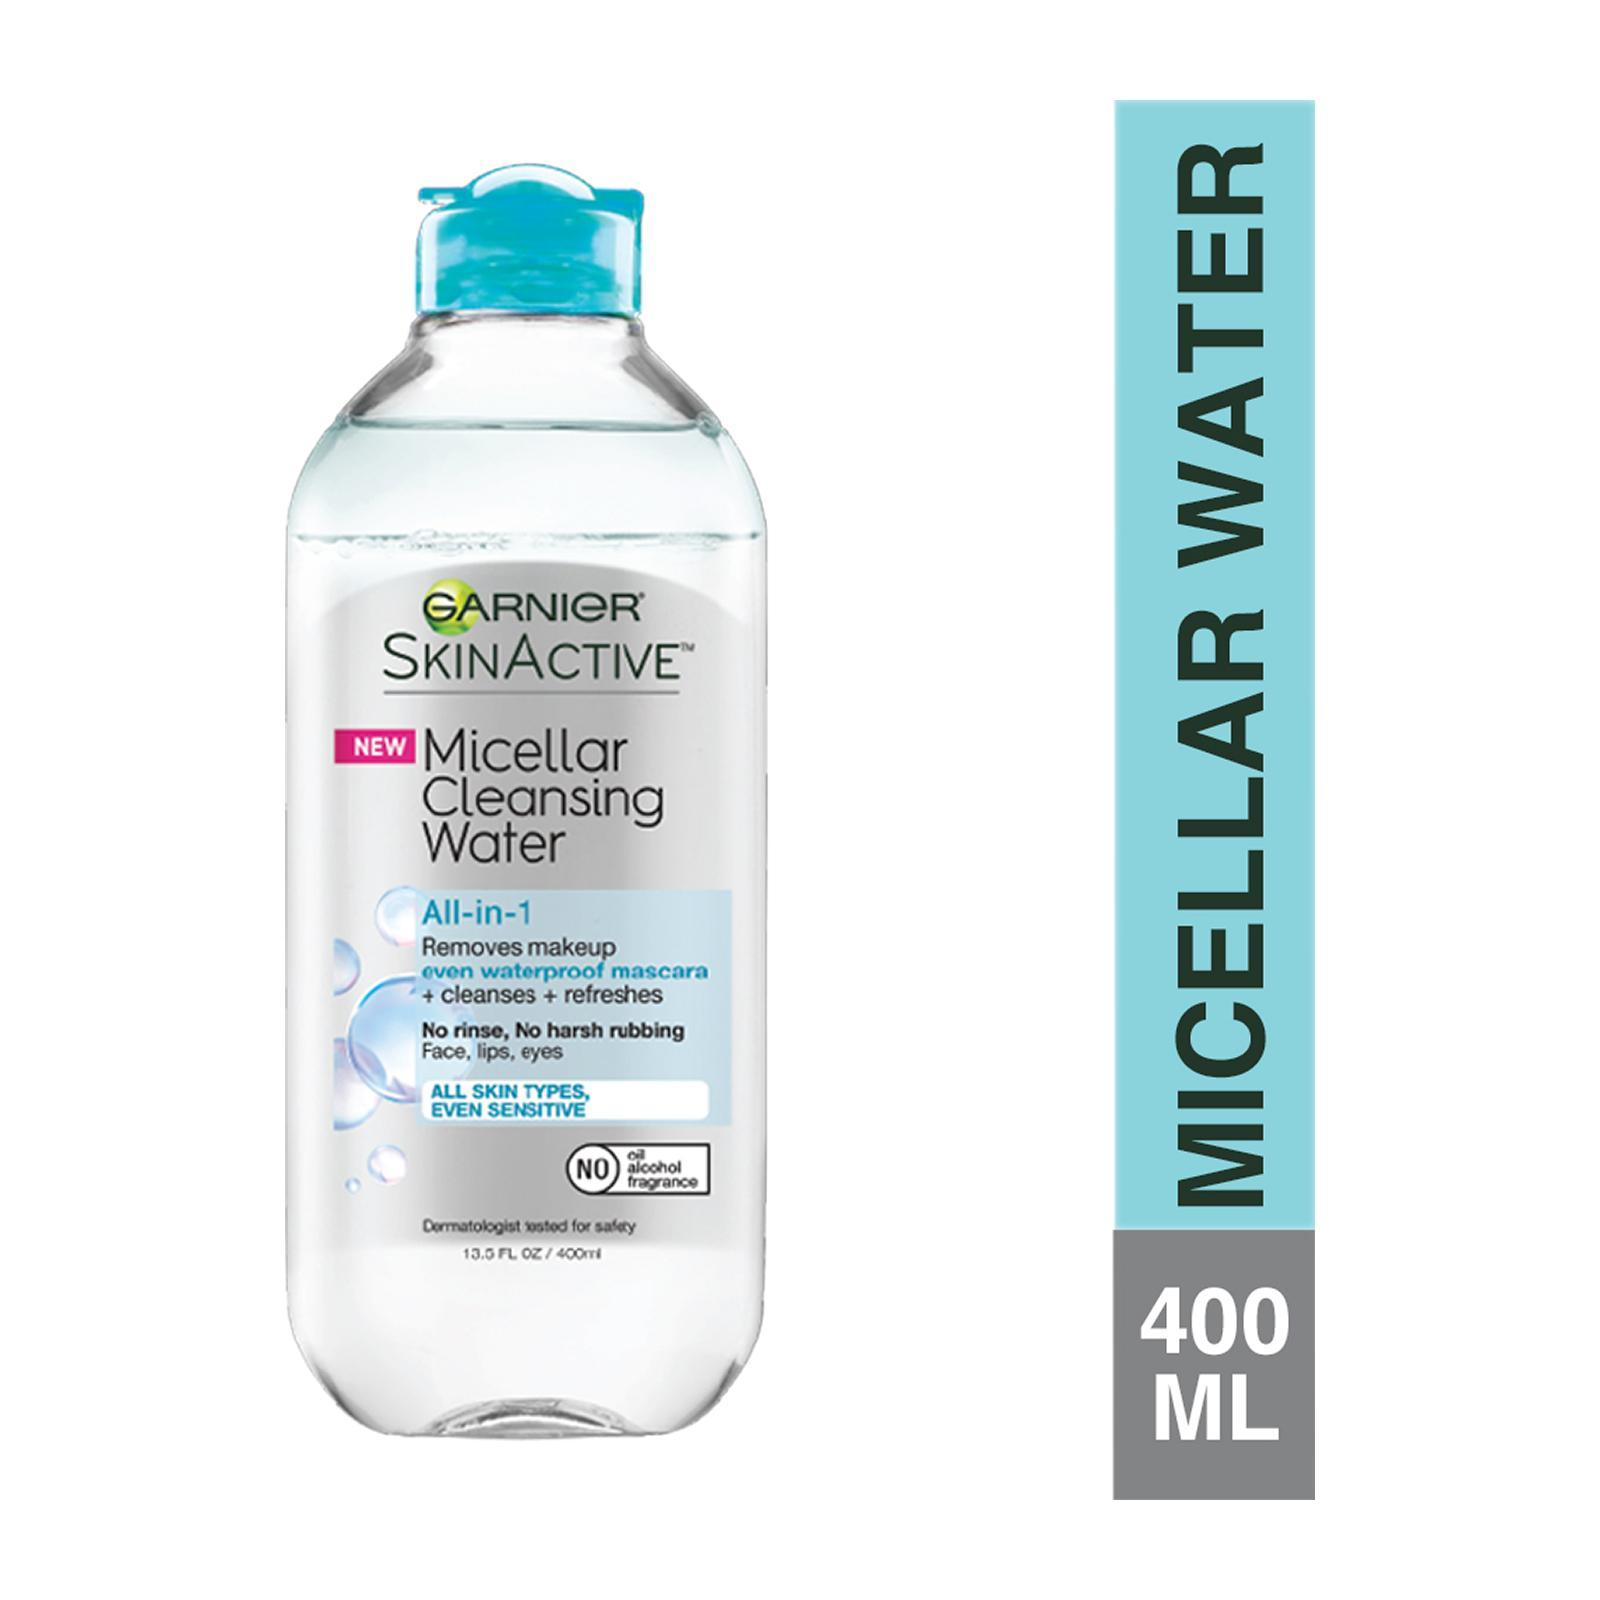 Garnier Micellar CleansIng Water All-In-1